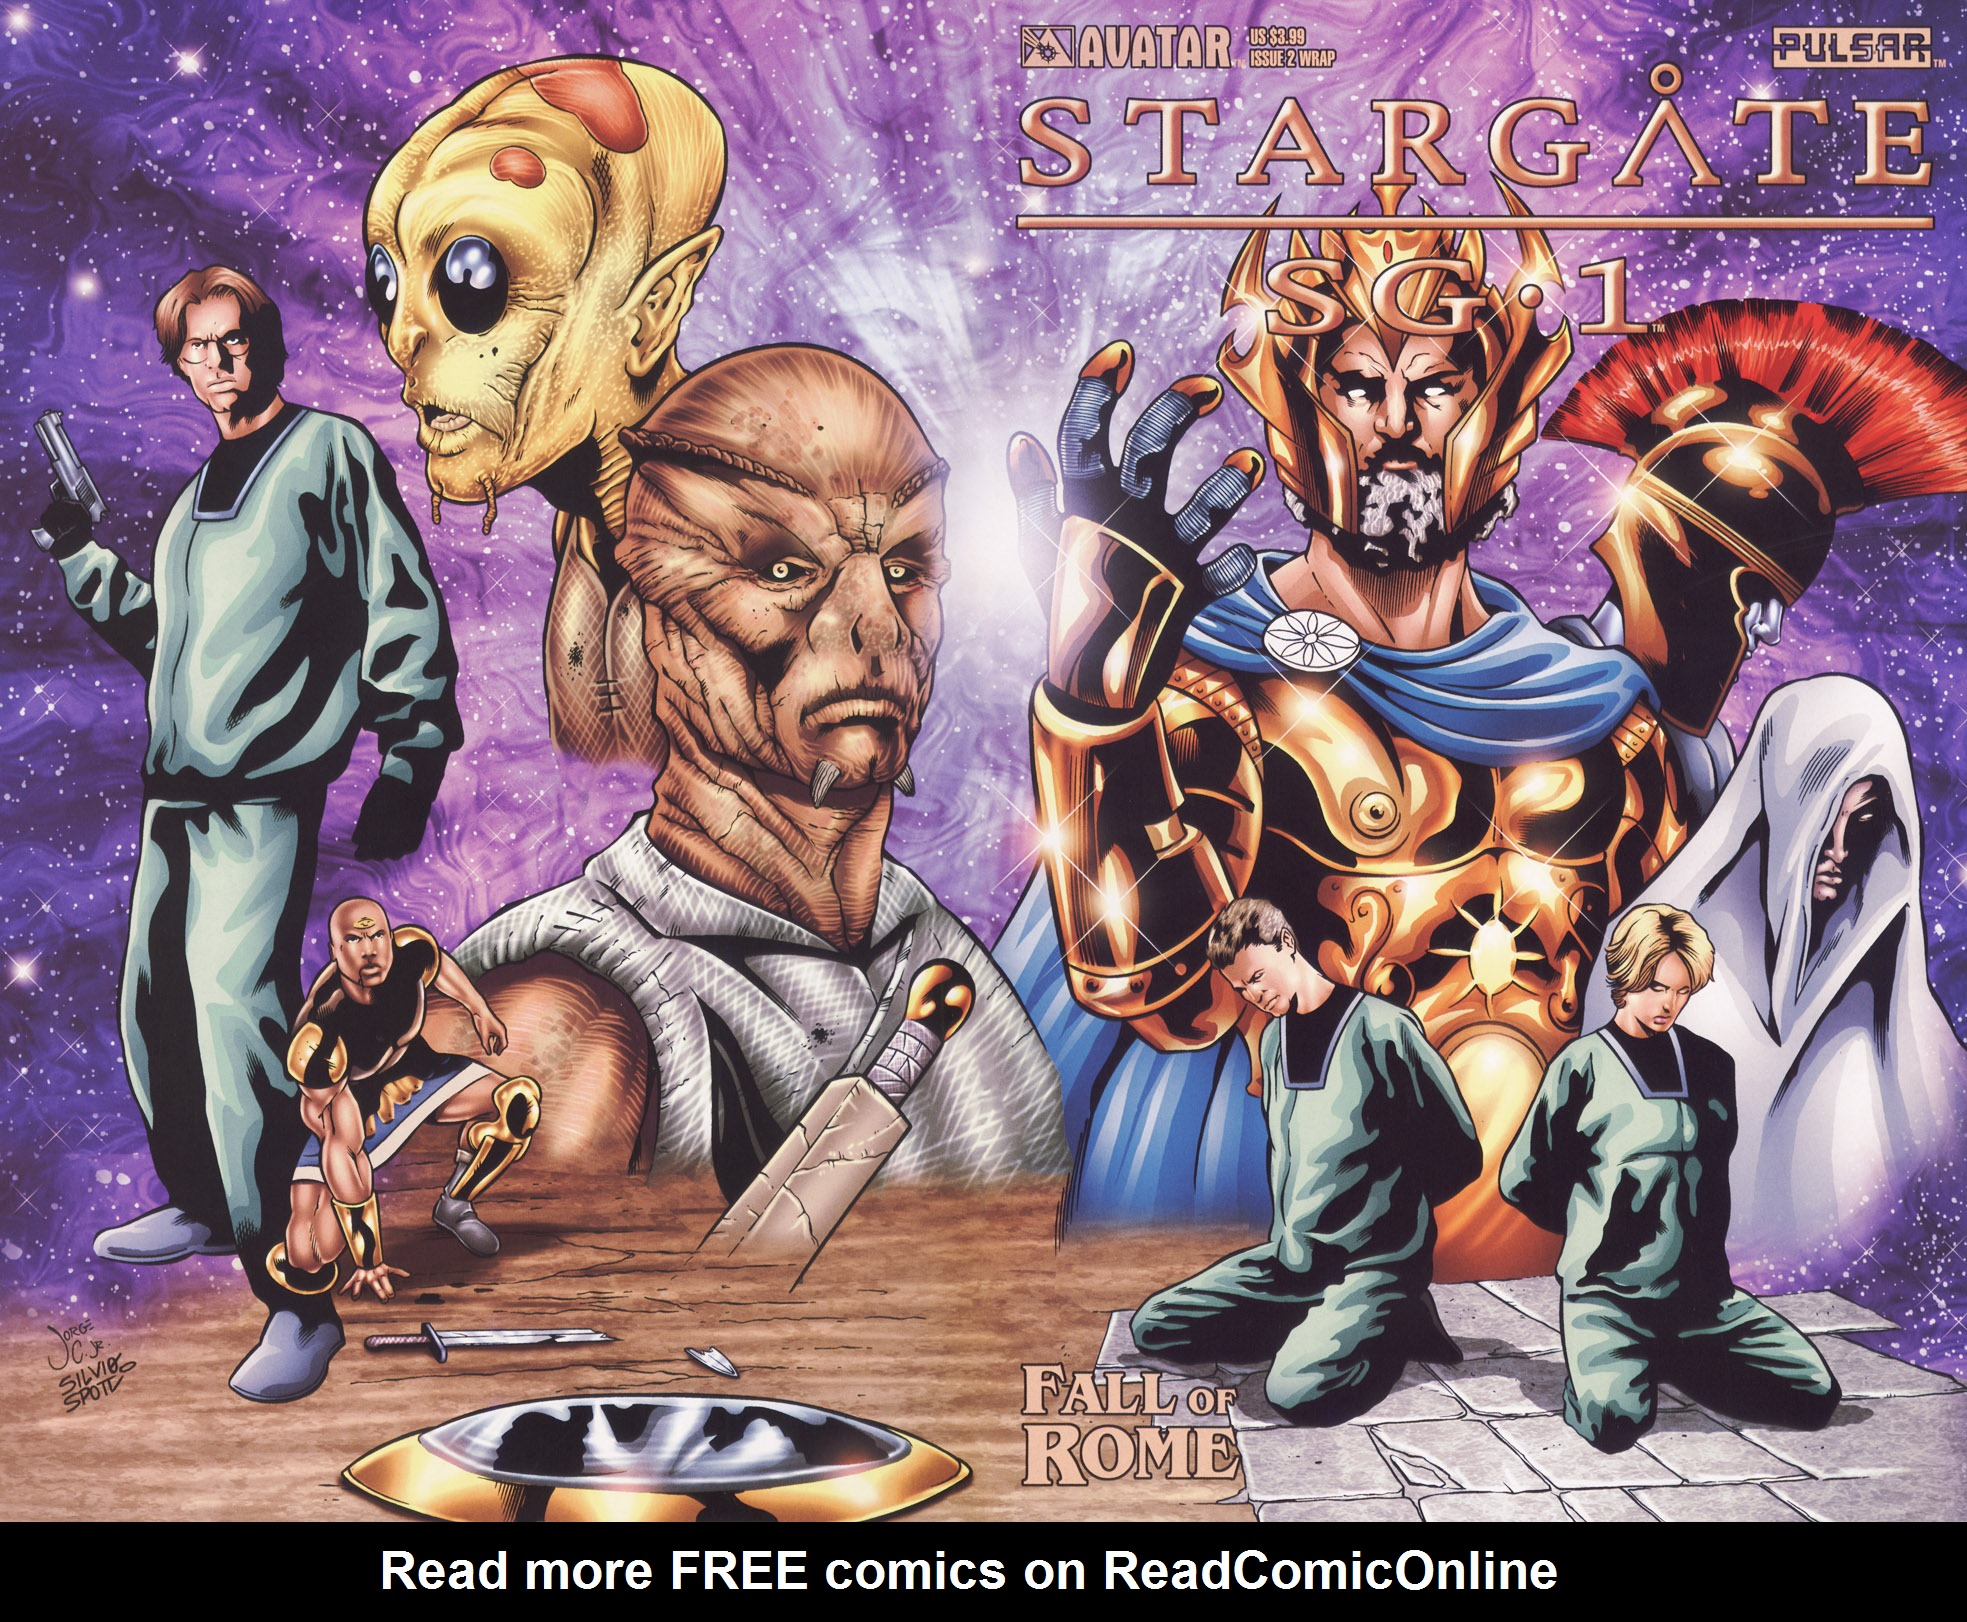 Read online Stargate SG-1: Fall of Rome comic -  Issue #2 - 1